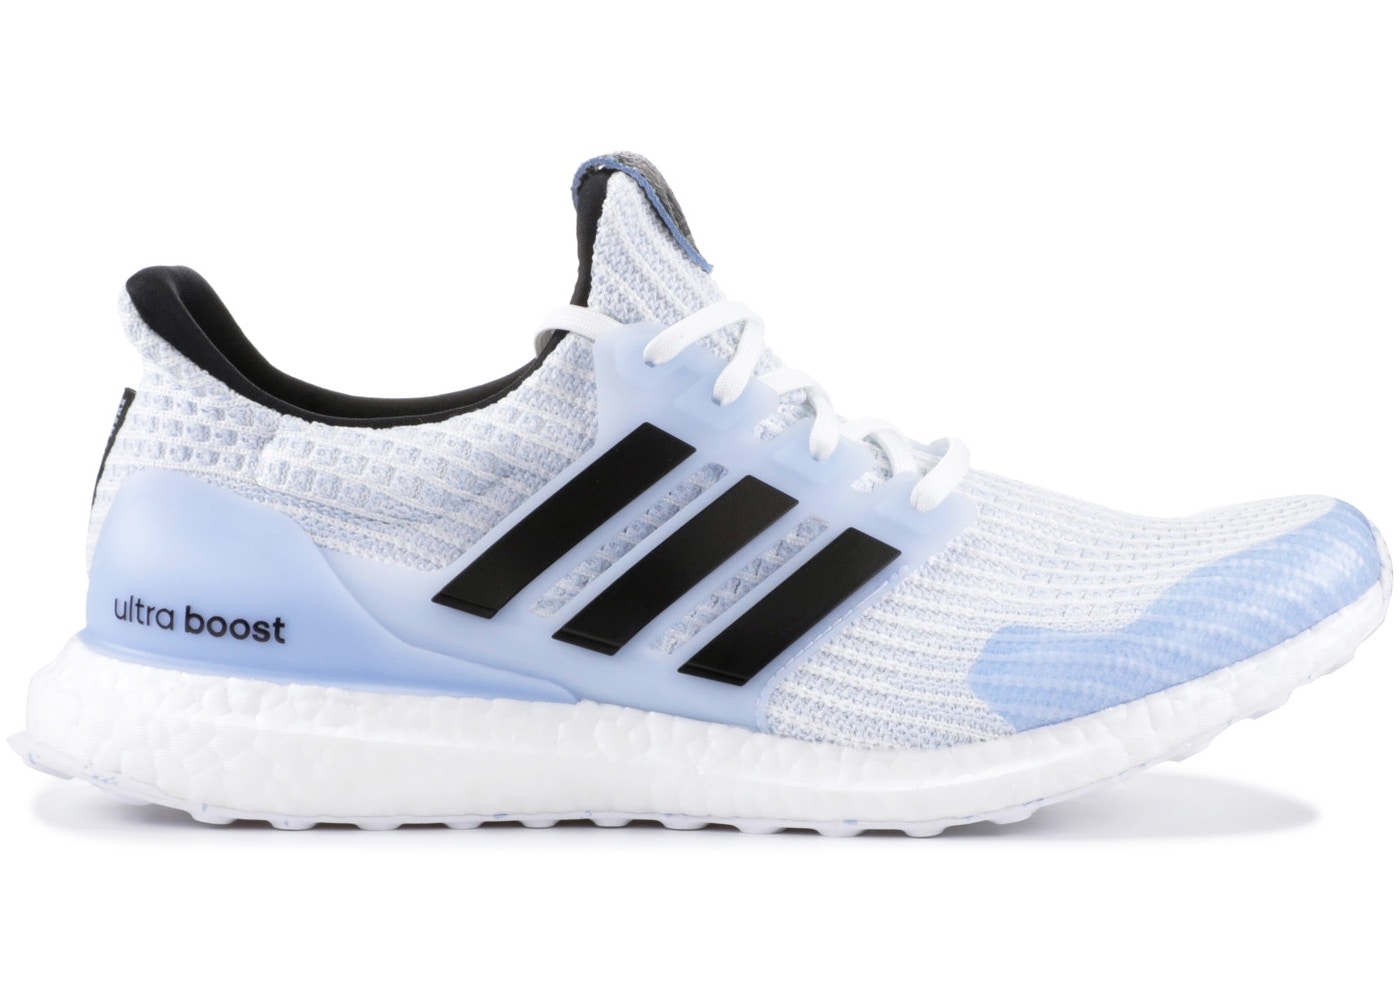 1745a295c8216 adidas Ultra Boost 4.0 Game of Thrones White Walkers - EE3708